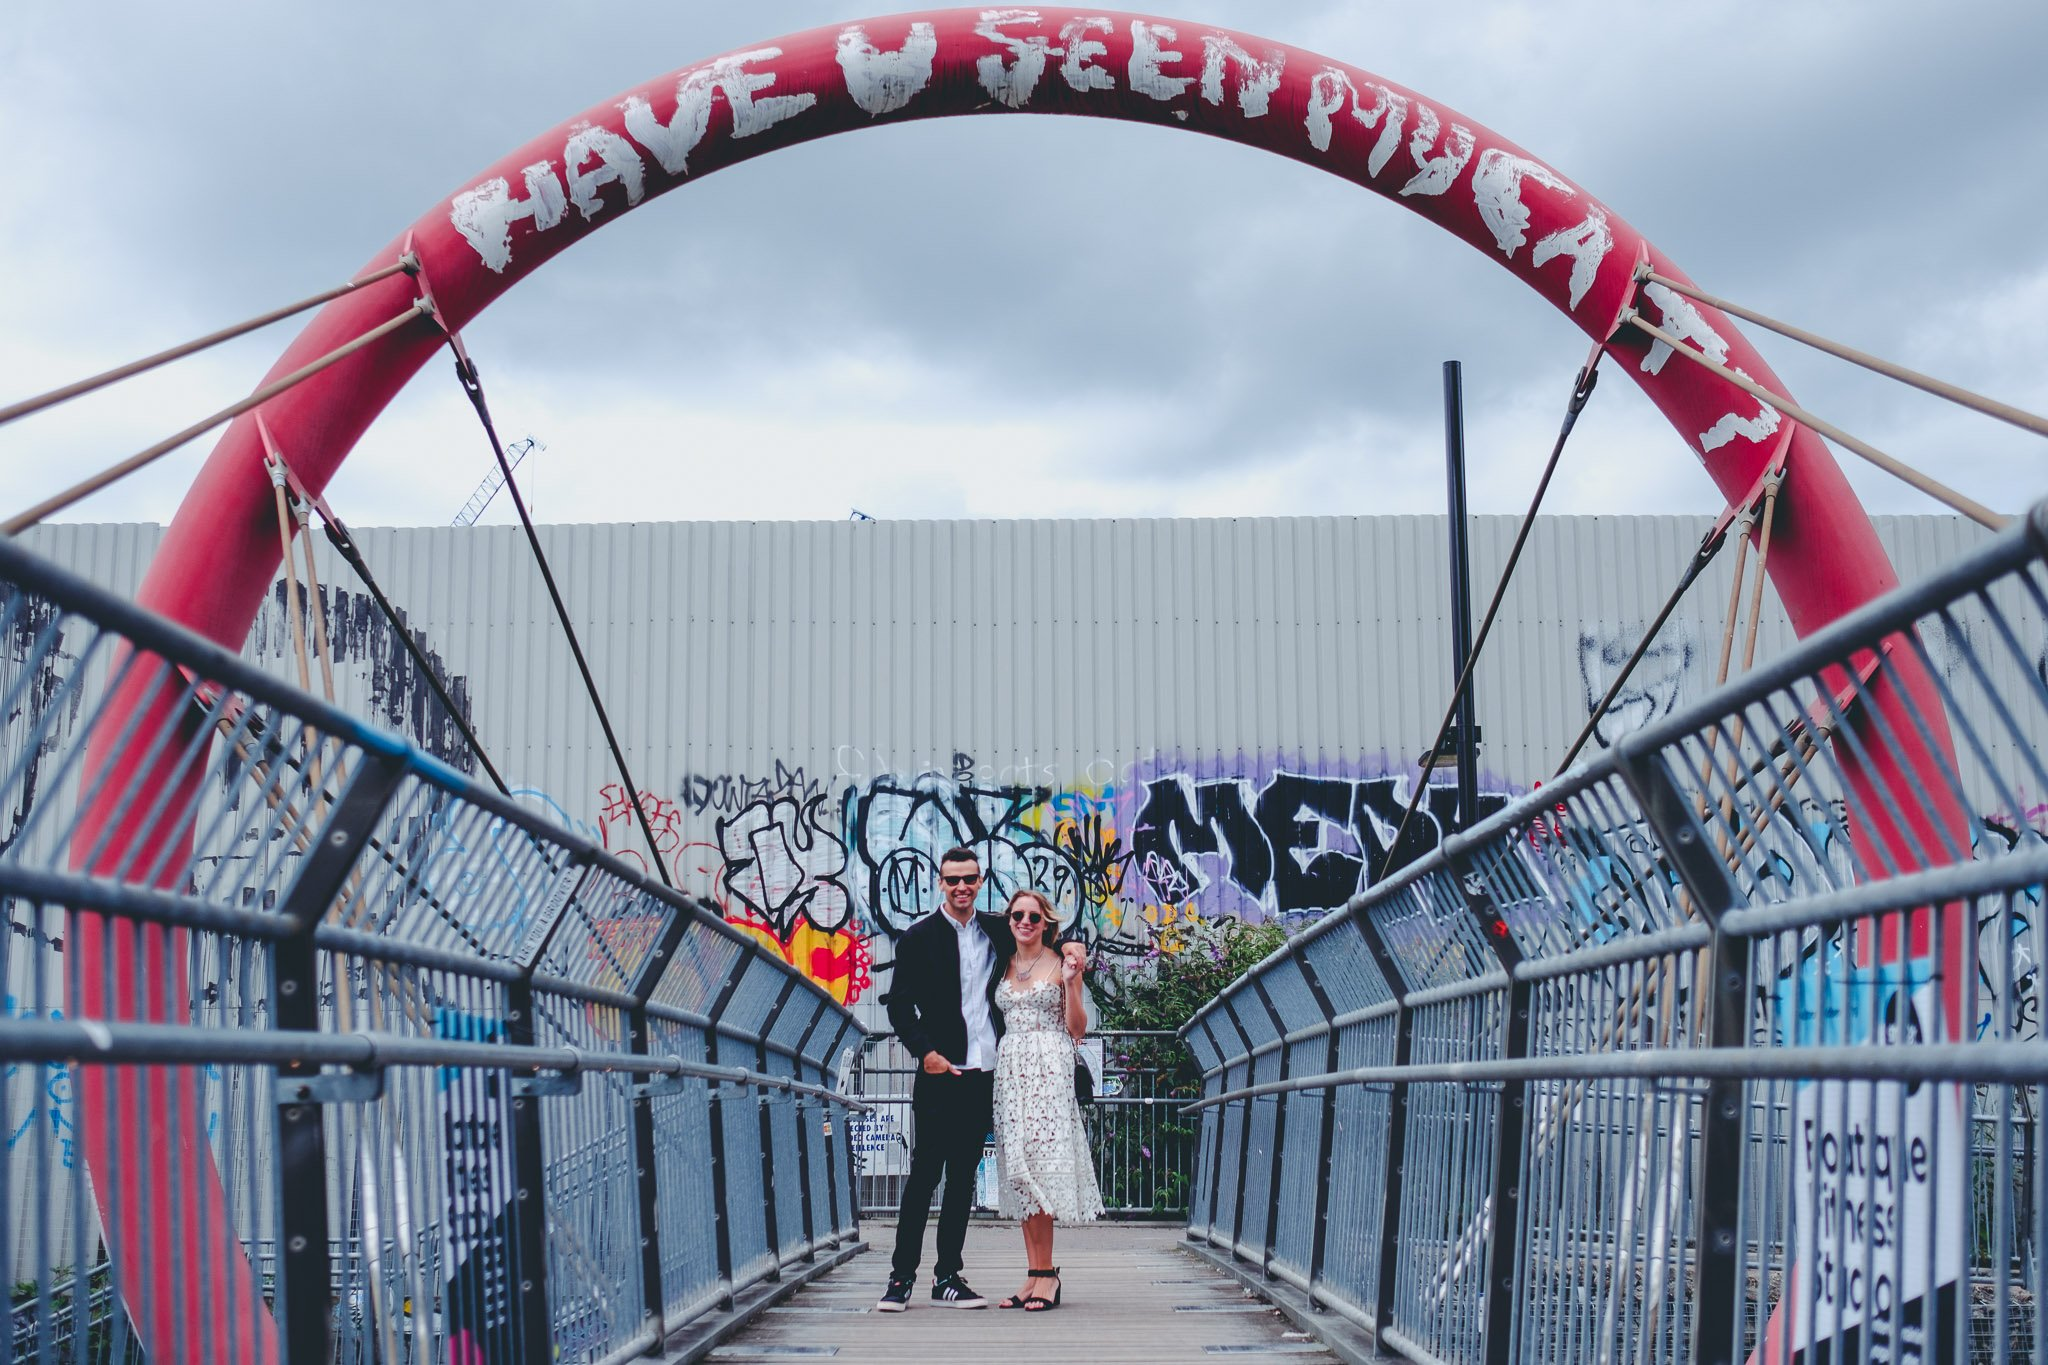 A young couple stand on a graffiti covered bridge in Hackney Wick for an engagement portrait, they are hugging and wearing sunglasses. Photography by thatthingyoupluck.